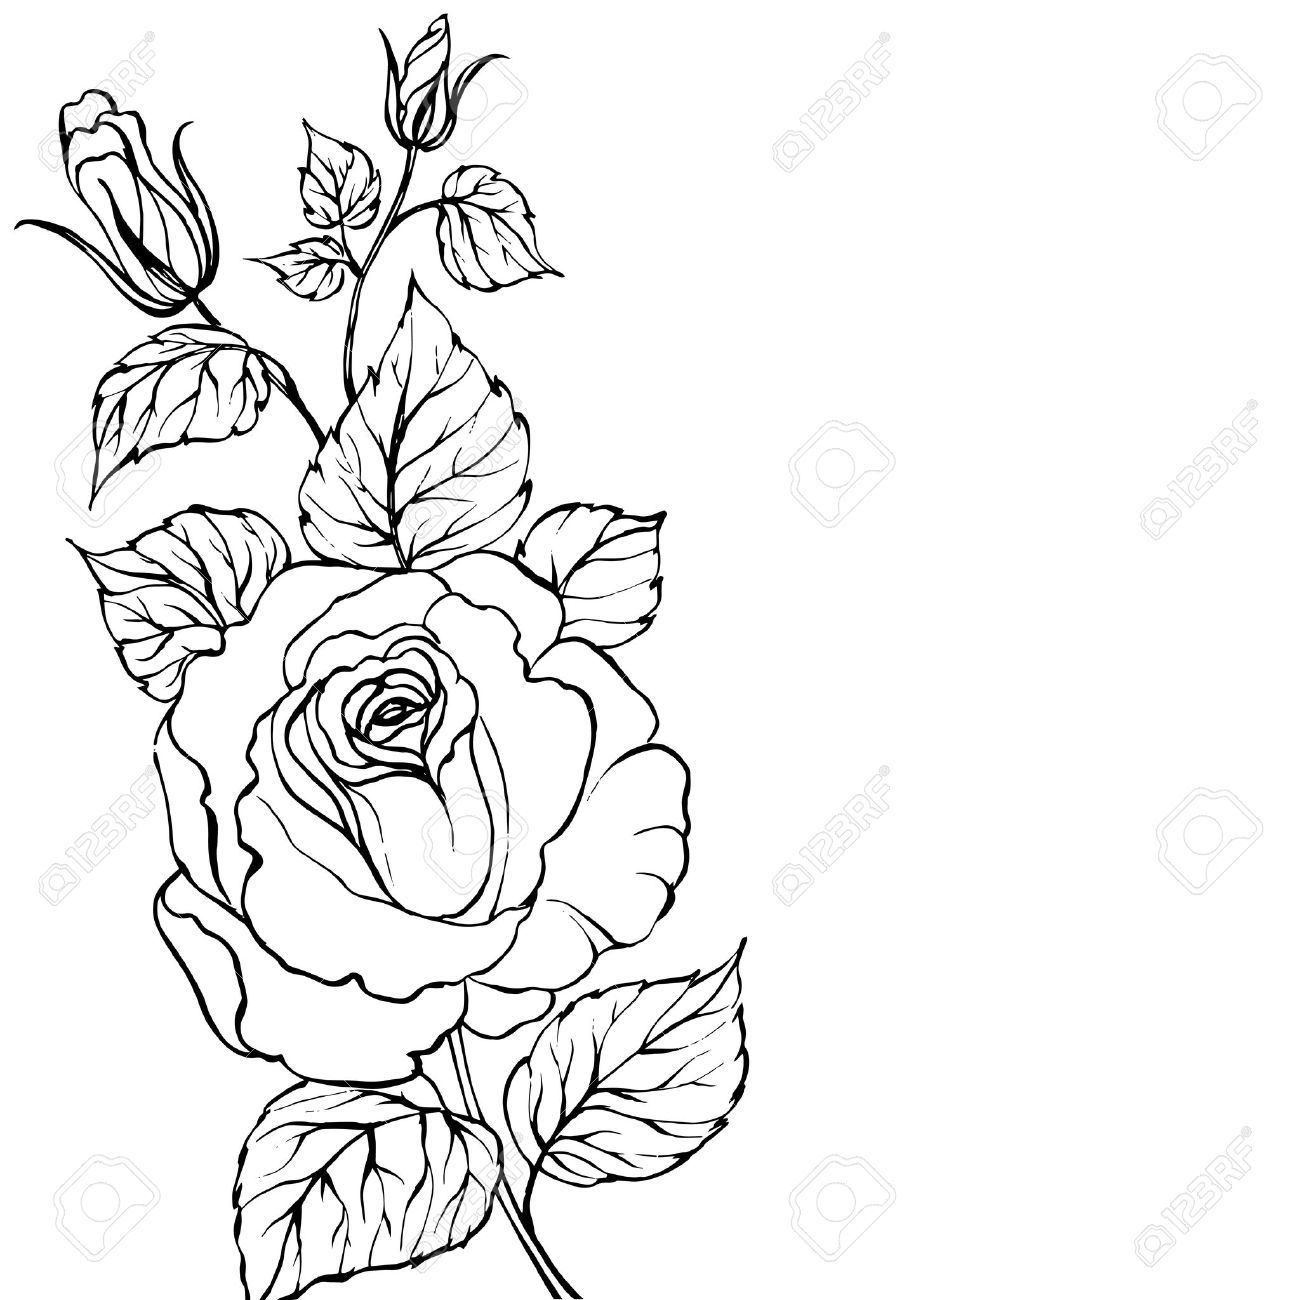 Rose Tattoos Outline Google Search Vine Drawing Rose Tattoo Tattoo Outline